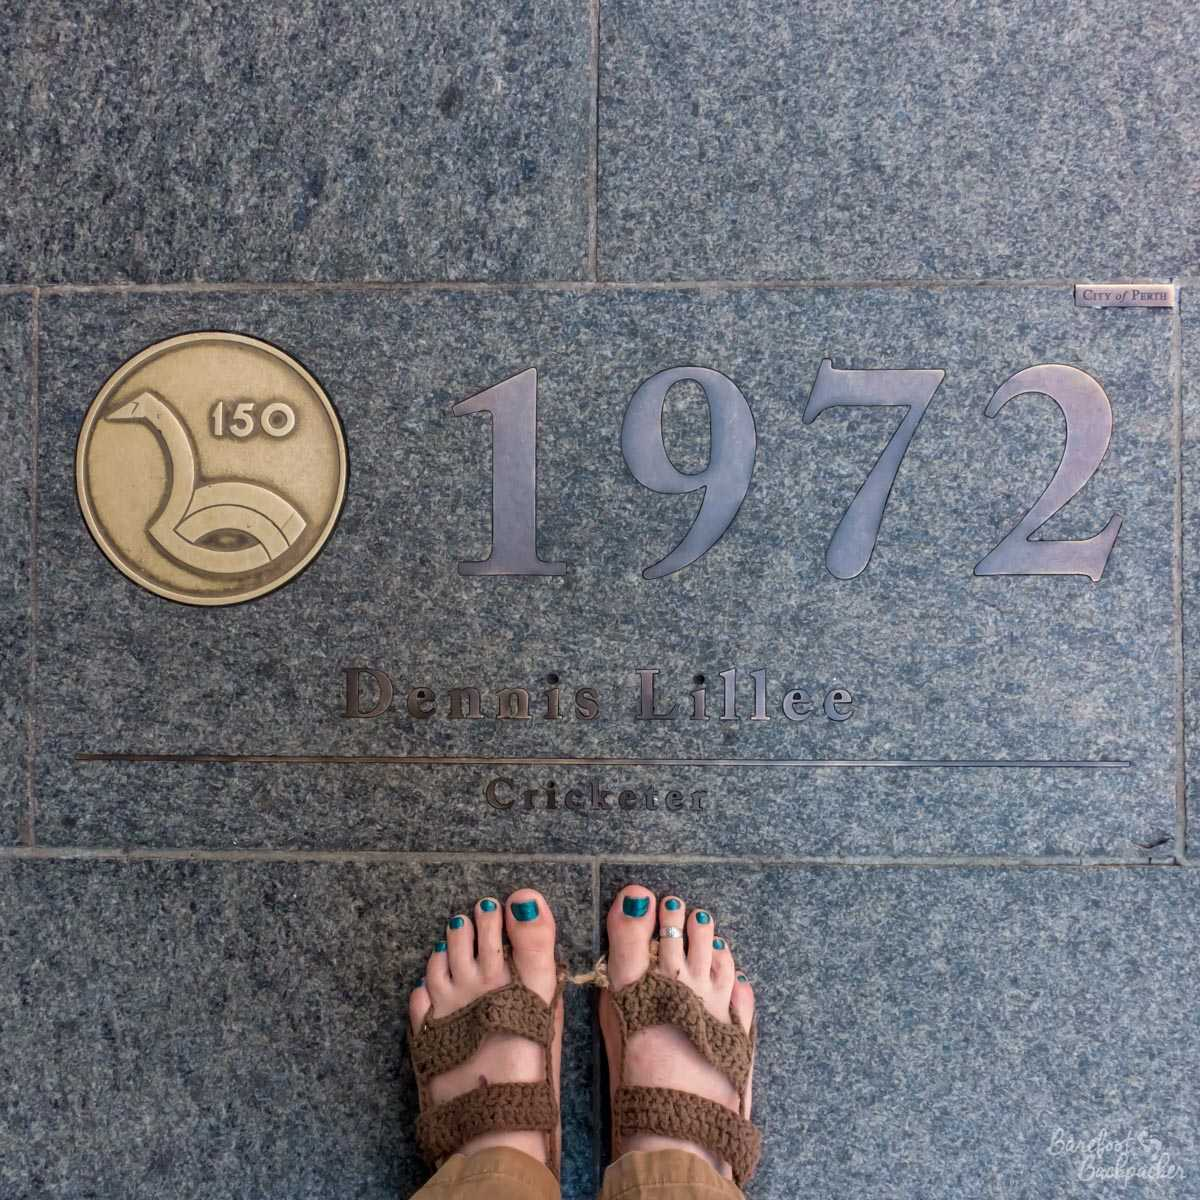 The plaque in the Perth walk of fame that commemorates 1972. It's to Dennis Lillie, the Australian cricketer and one of the fastest fast bowlers that ever played. He came from Subiaco, a suburb of Perth. I am standing just below the plaque – a pair of crochet-covered feet with teal toenails standing contrasting against the stone blue of the plaque.